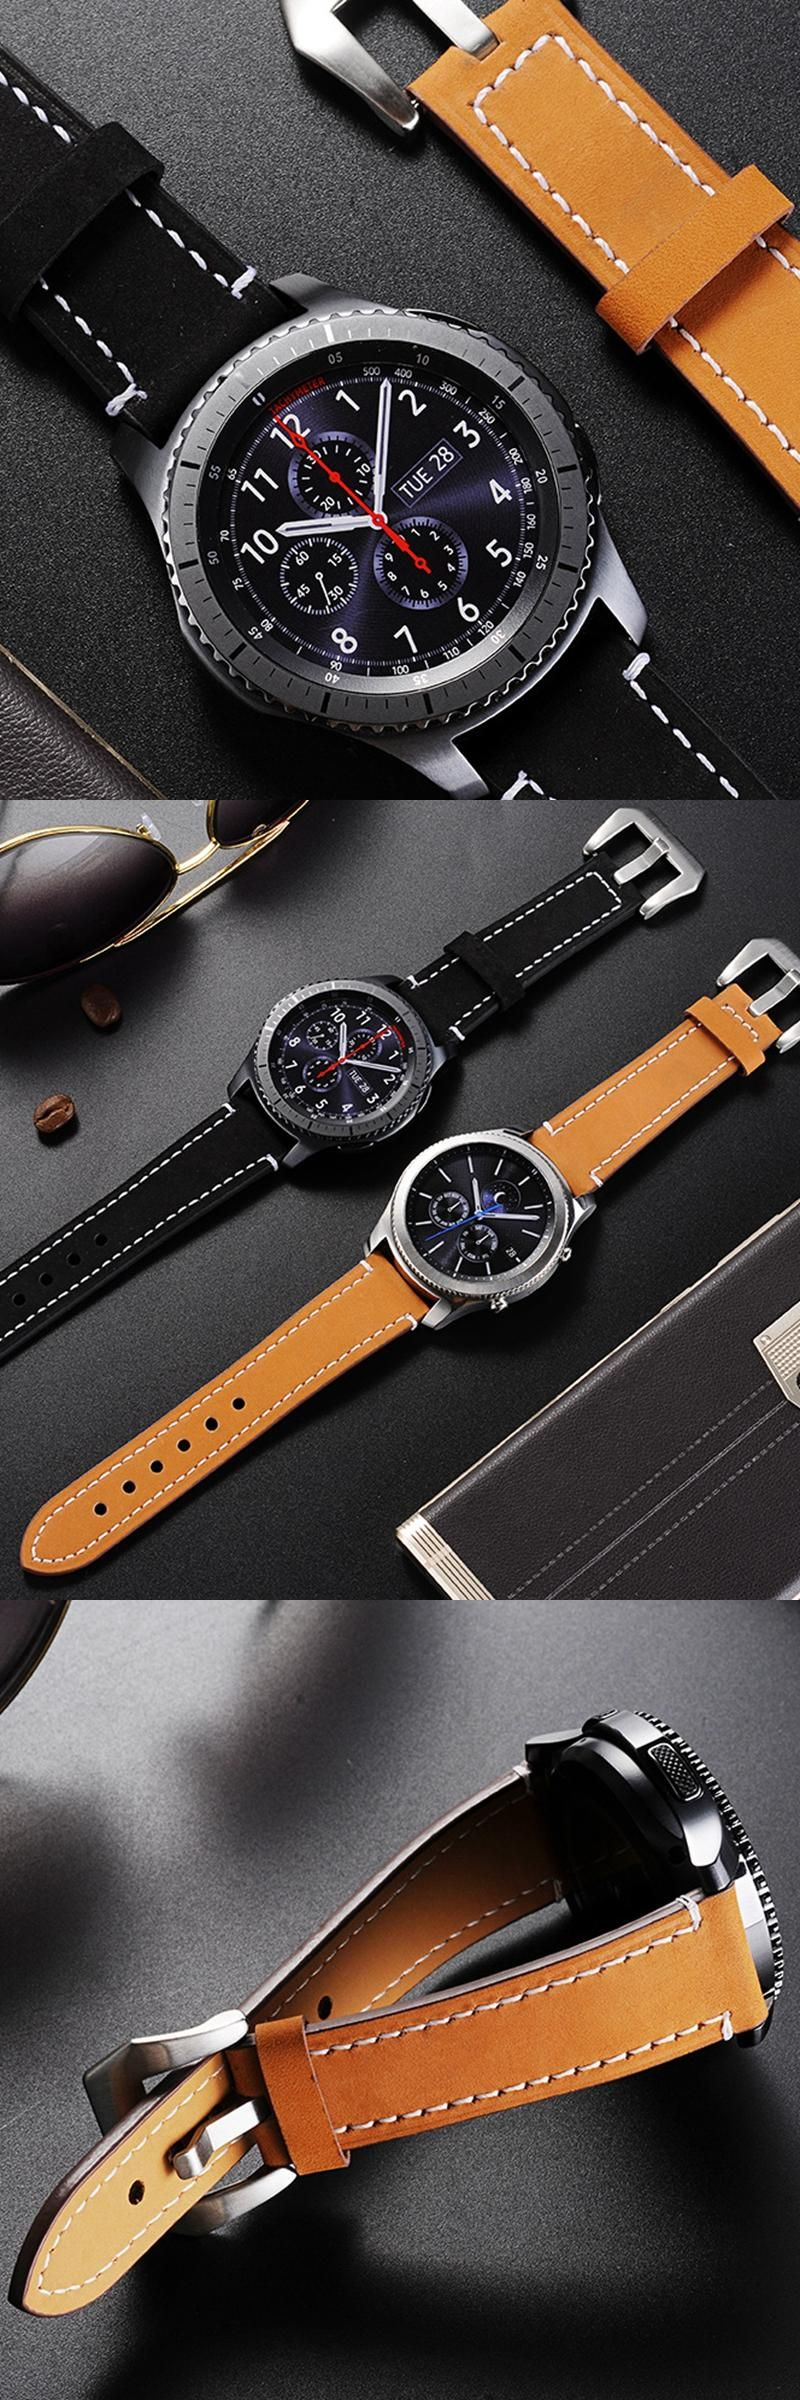 Newest 22mm Genuine Leather watch band strap for Samsung Gear S3 Classic Frontier with Quick Realease Pin watchbands